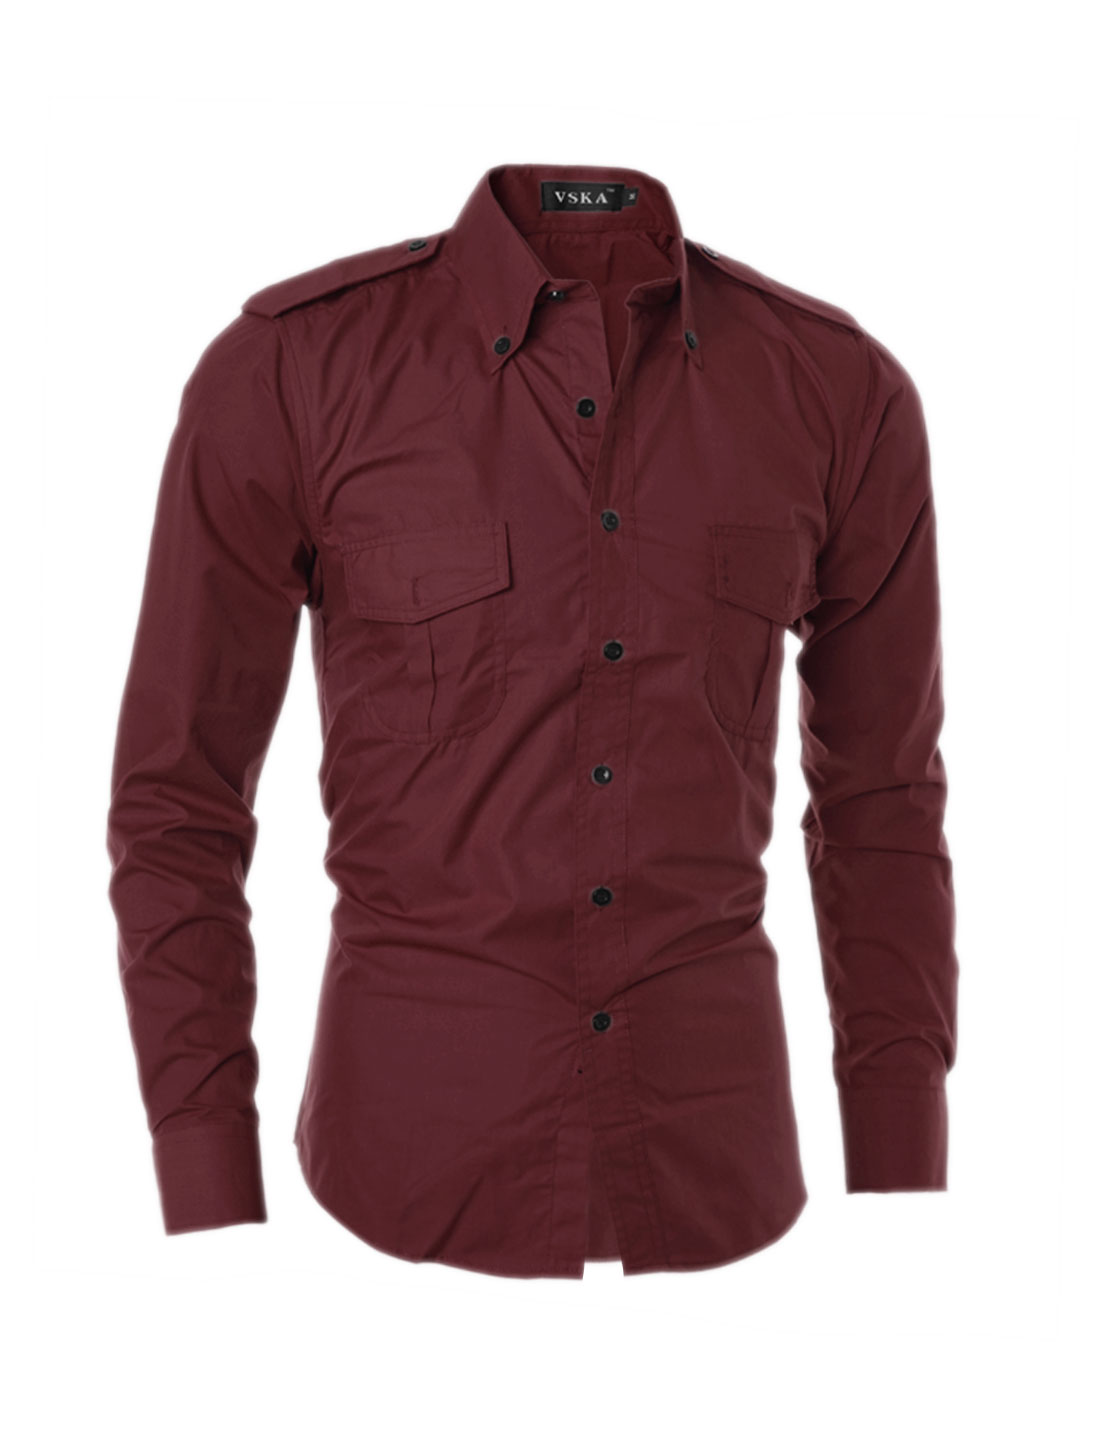 Man Flap Pockets Point Collar Buttoned Shirt Red S